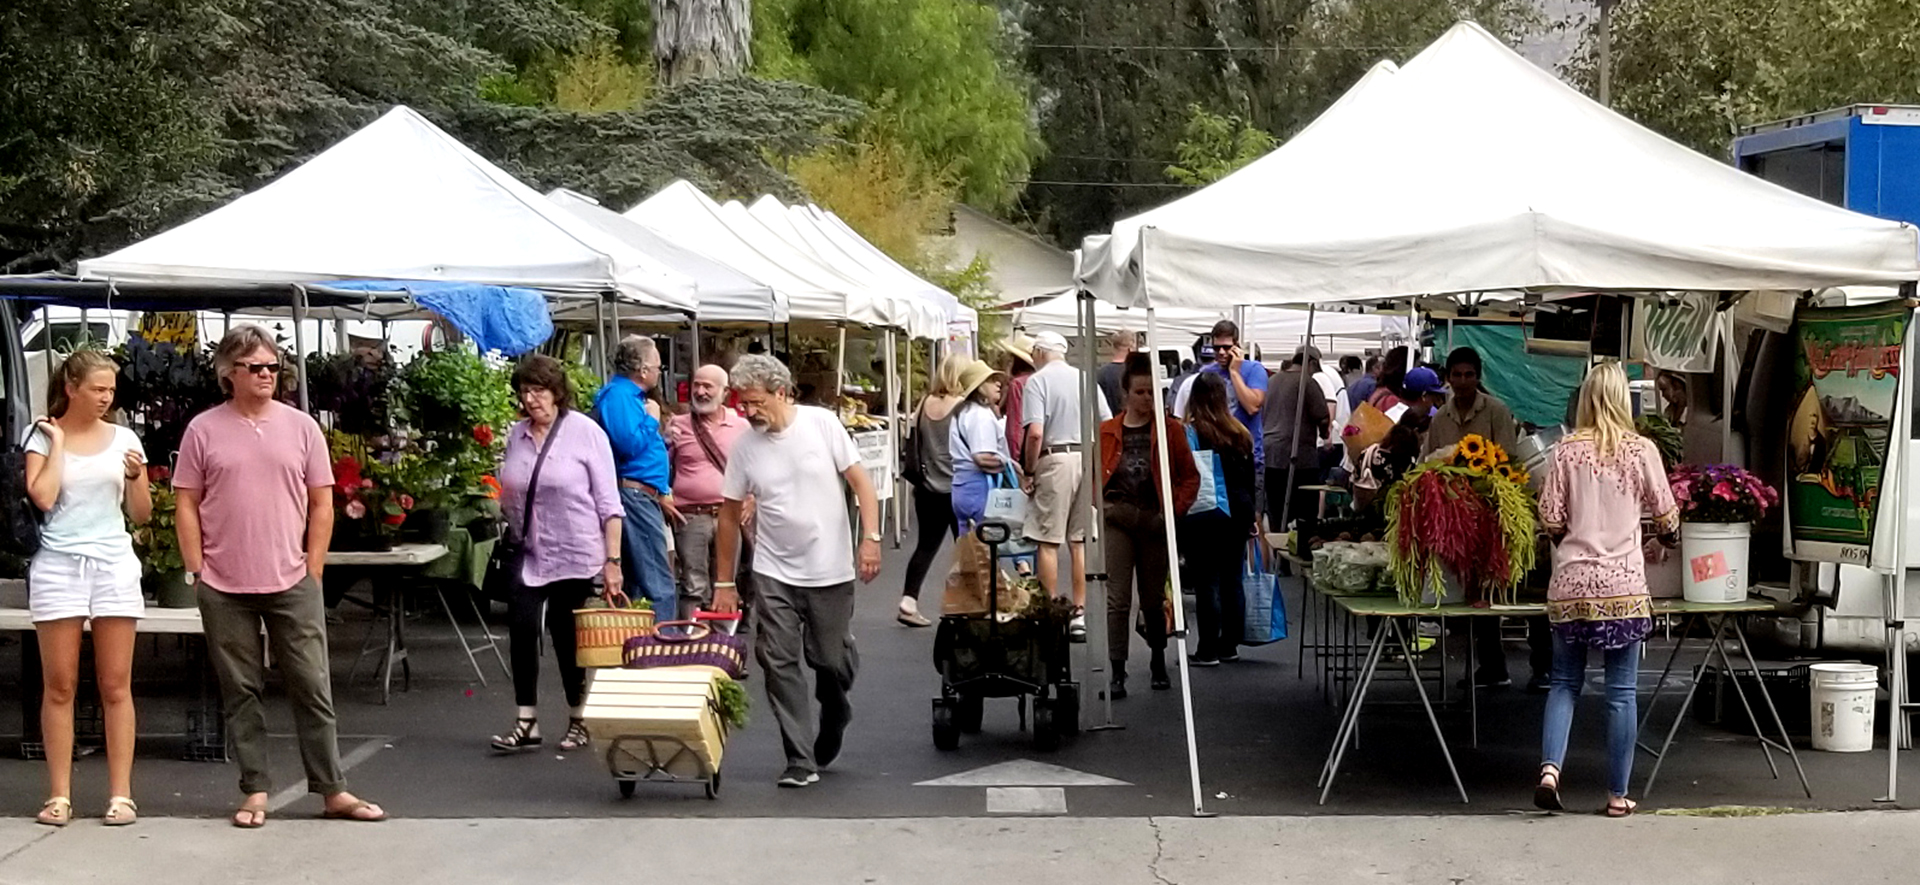 The Ojai Certified Farmer's Market located at 300 East Matilija Street, Ojai.